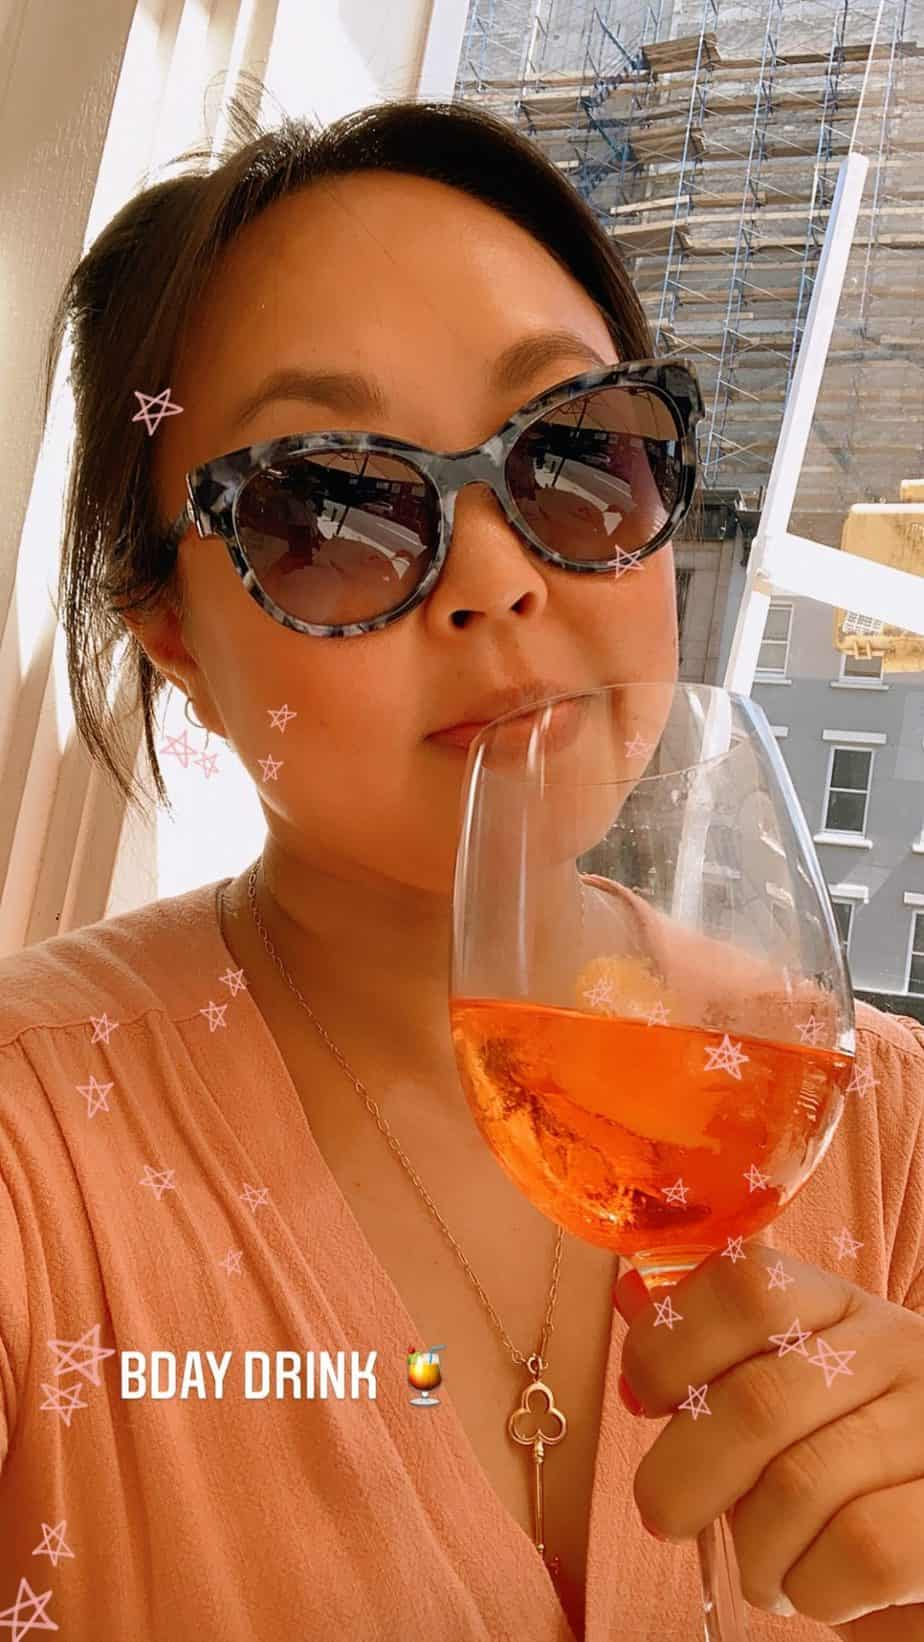 Girl in sunglasses holding an aperol spritz